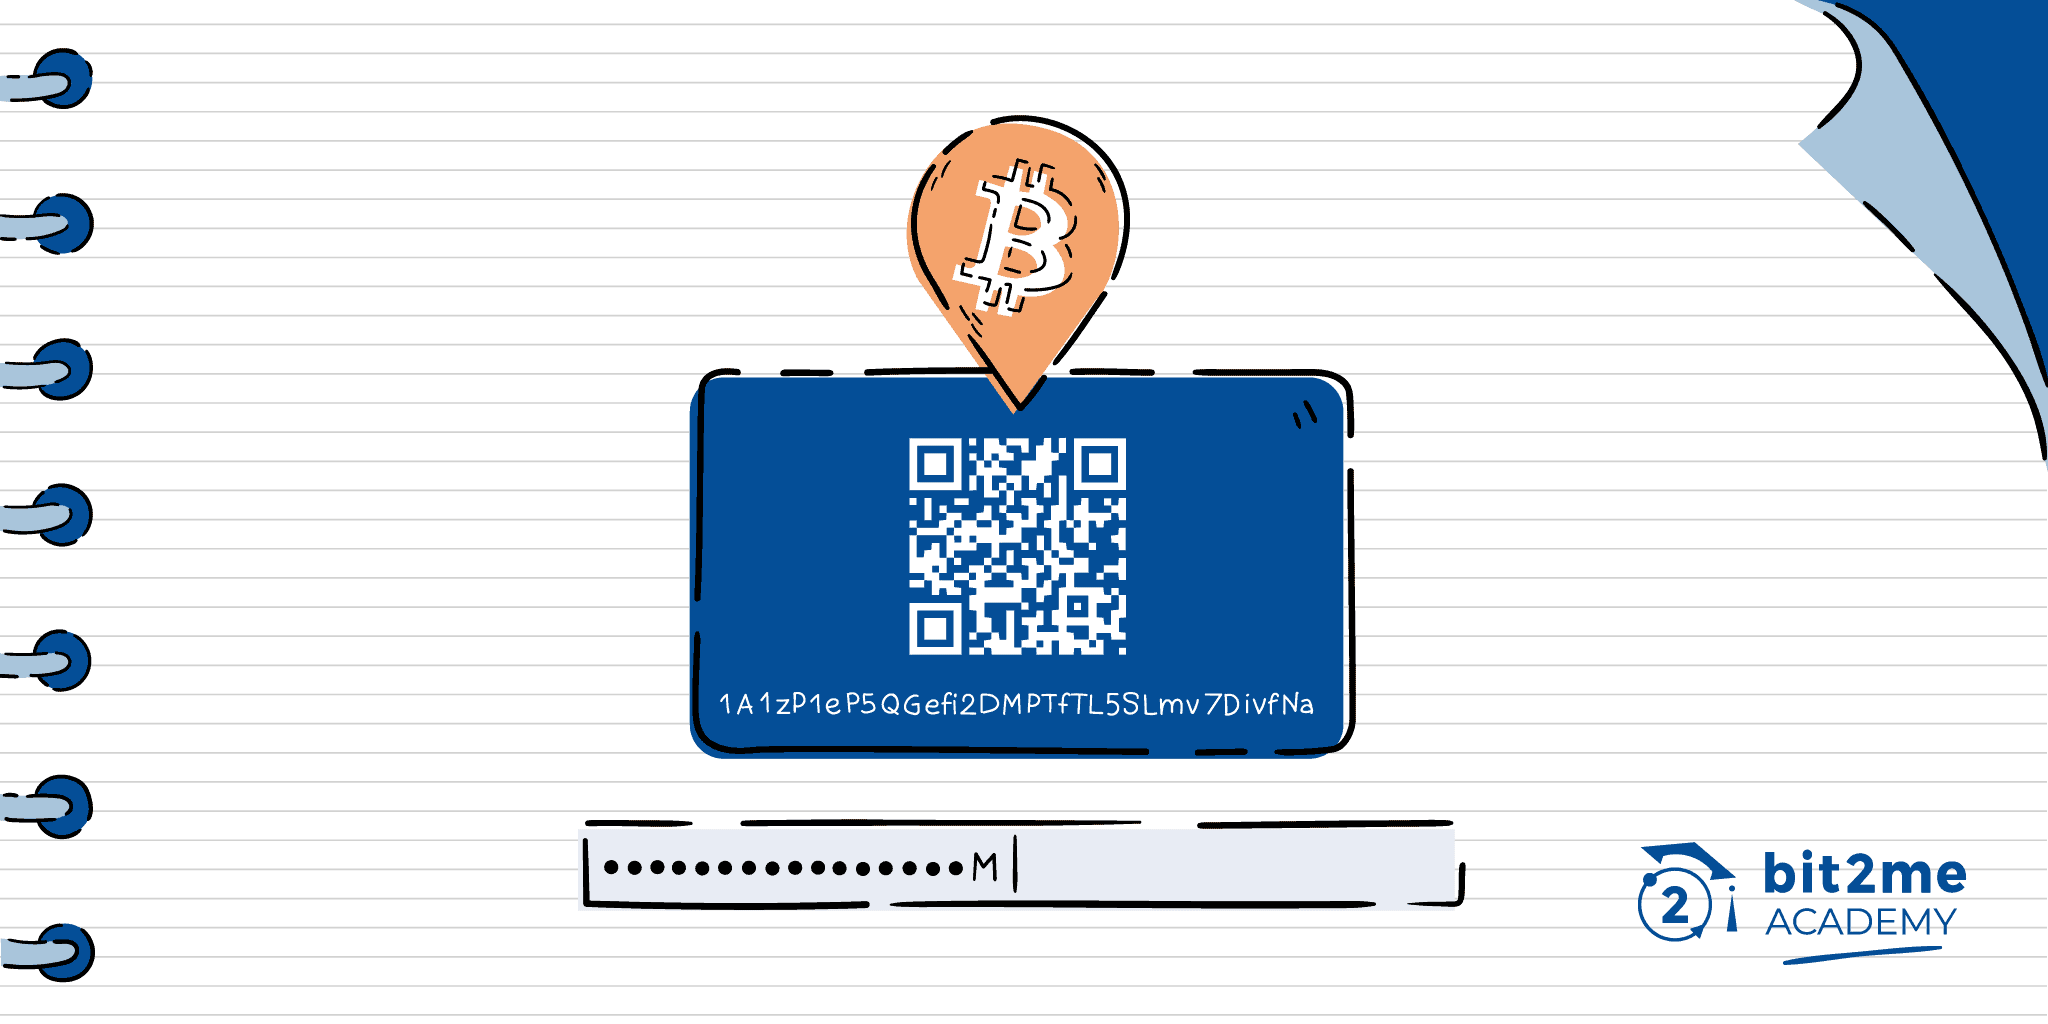 How to sign a message with your bitcoin address?